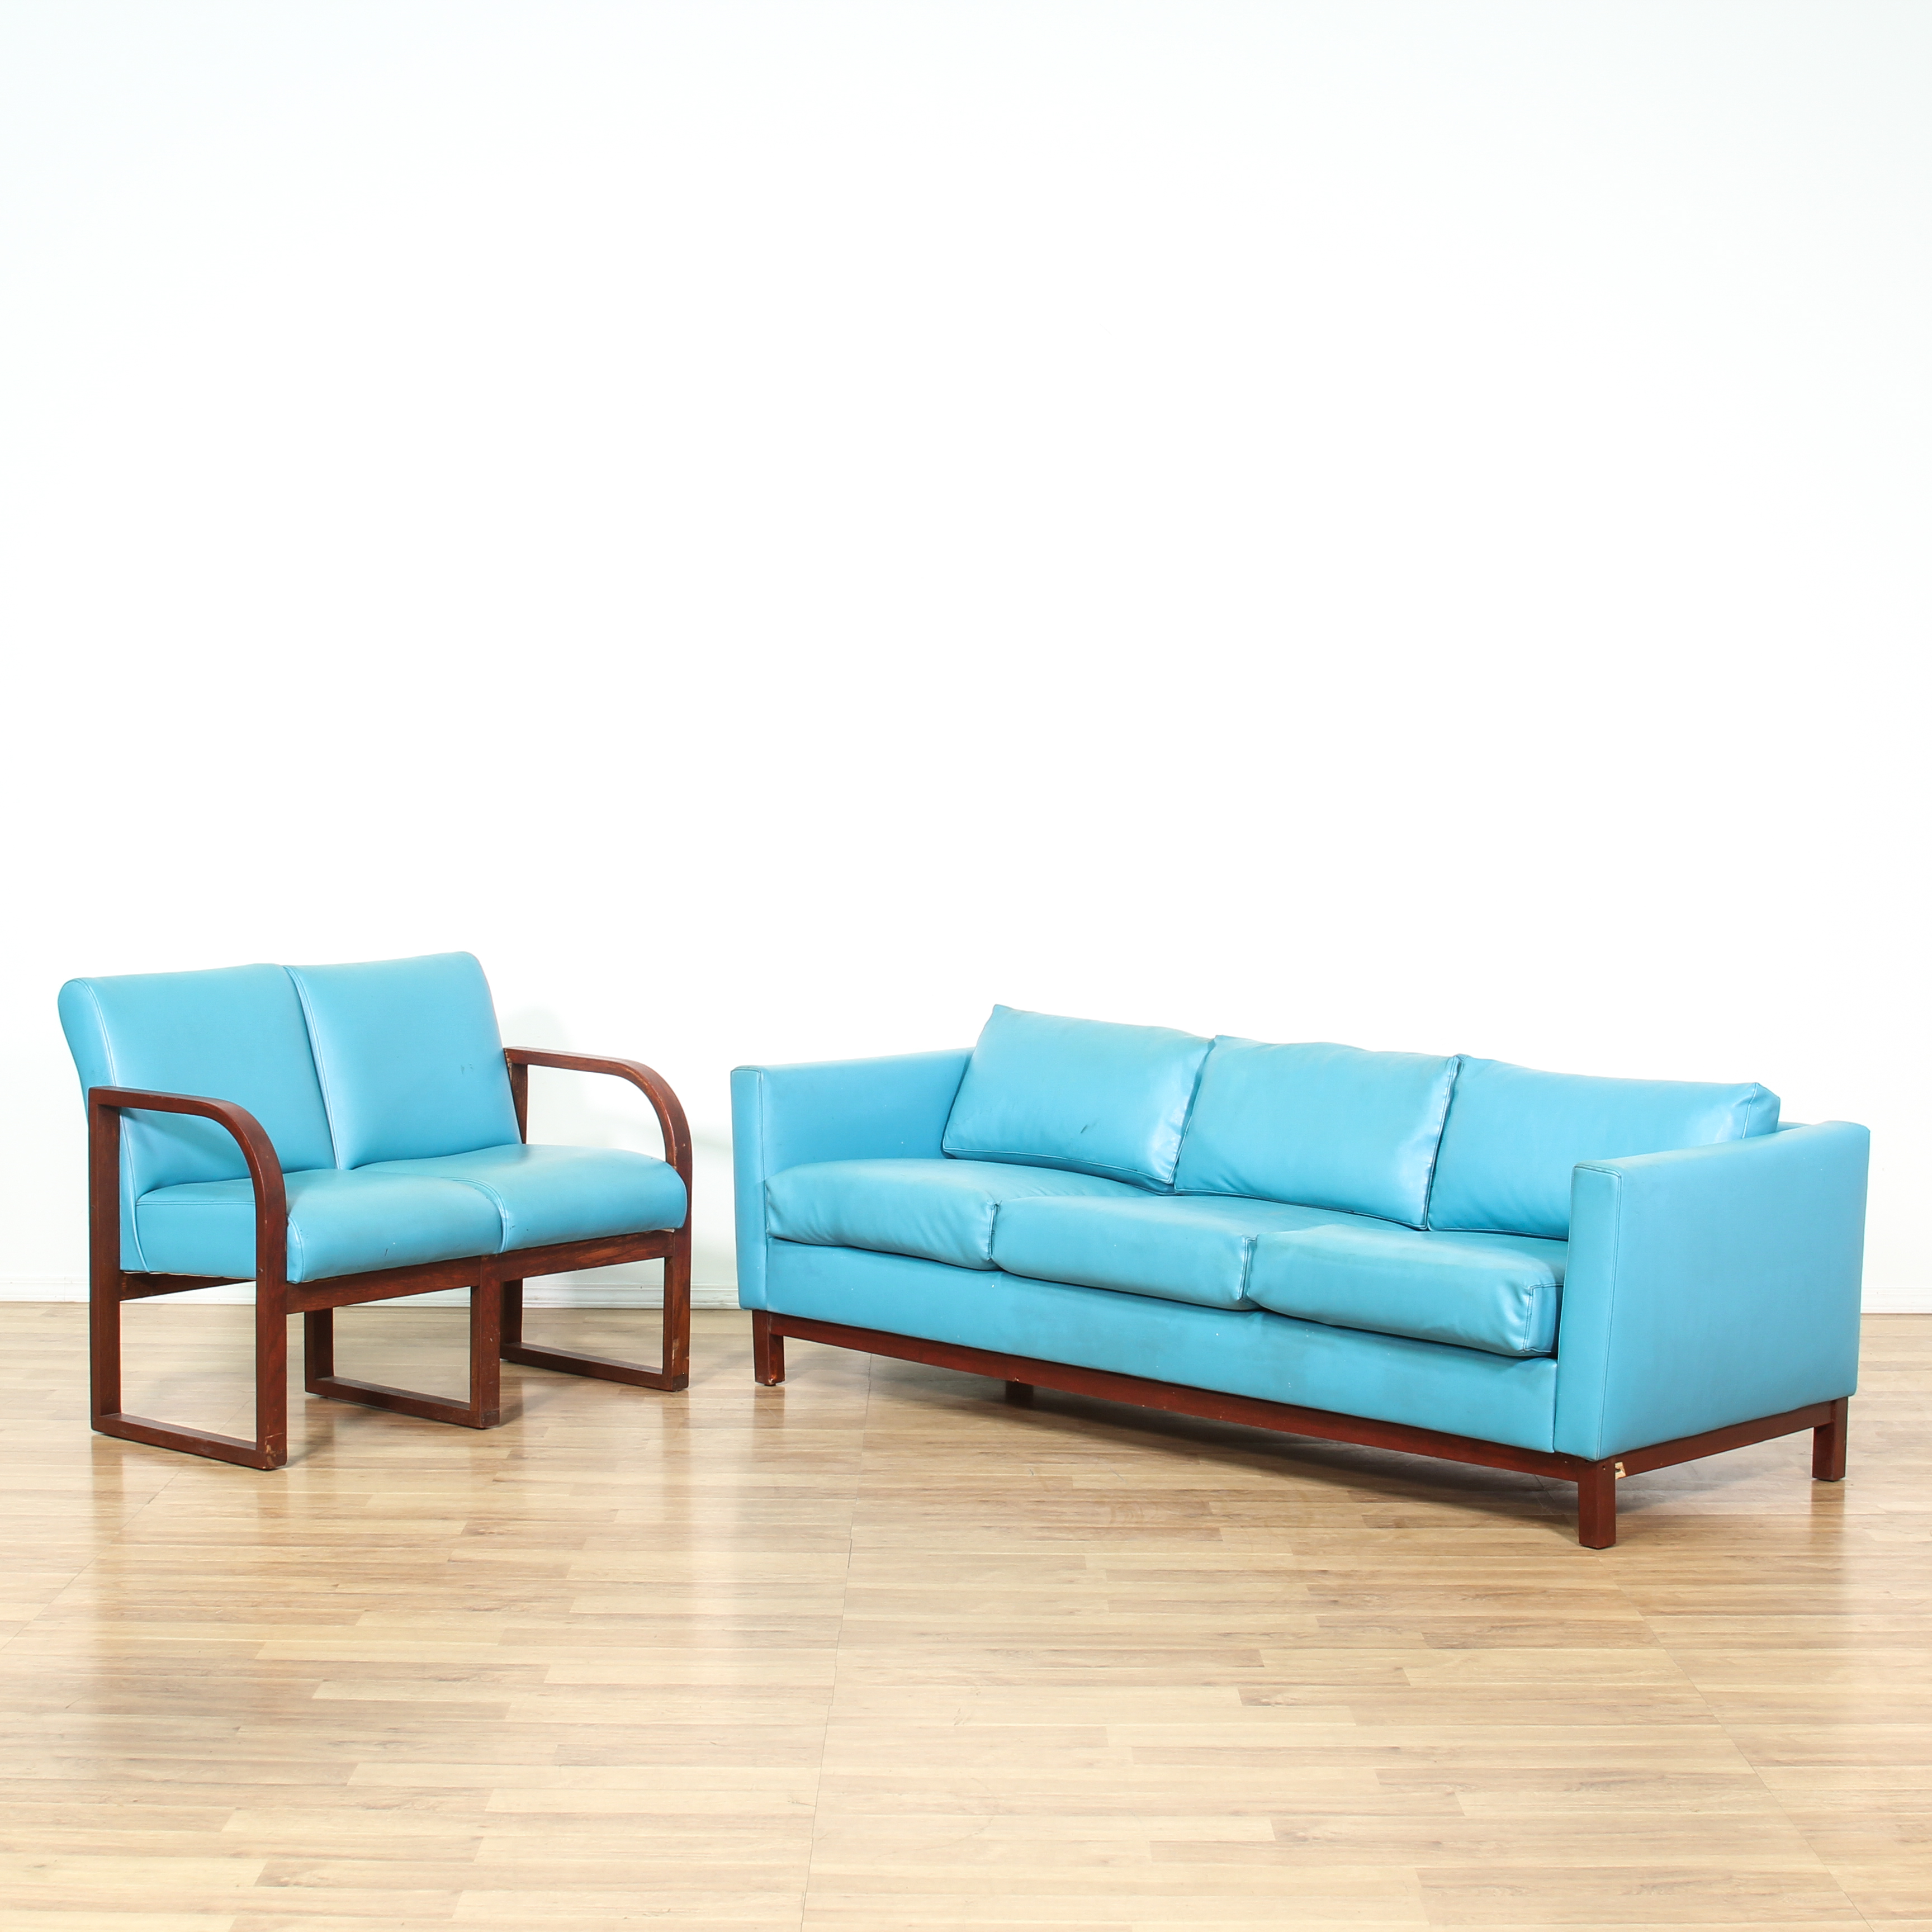 vinyl sectional sofa black bed with storage mid century modern blue and double chair